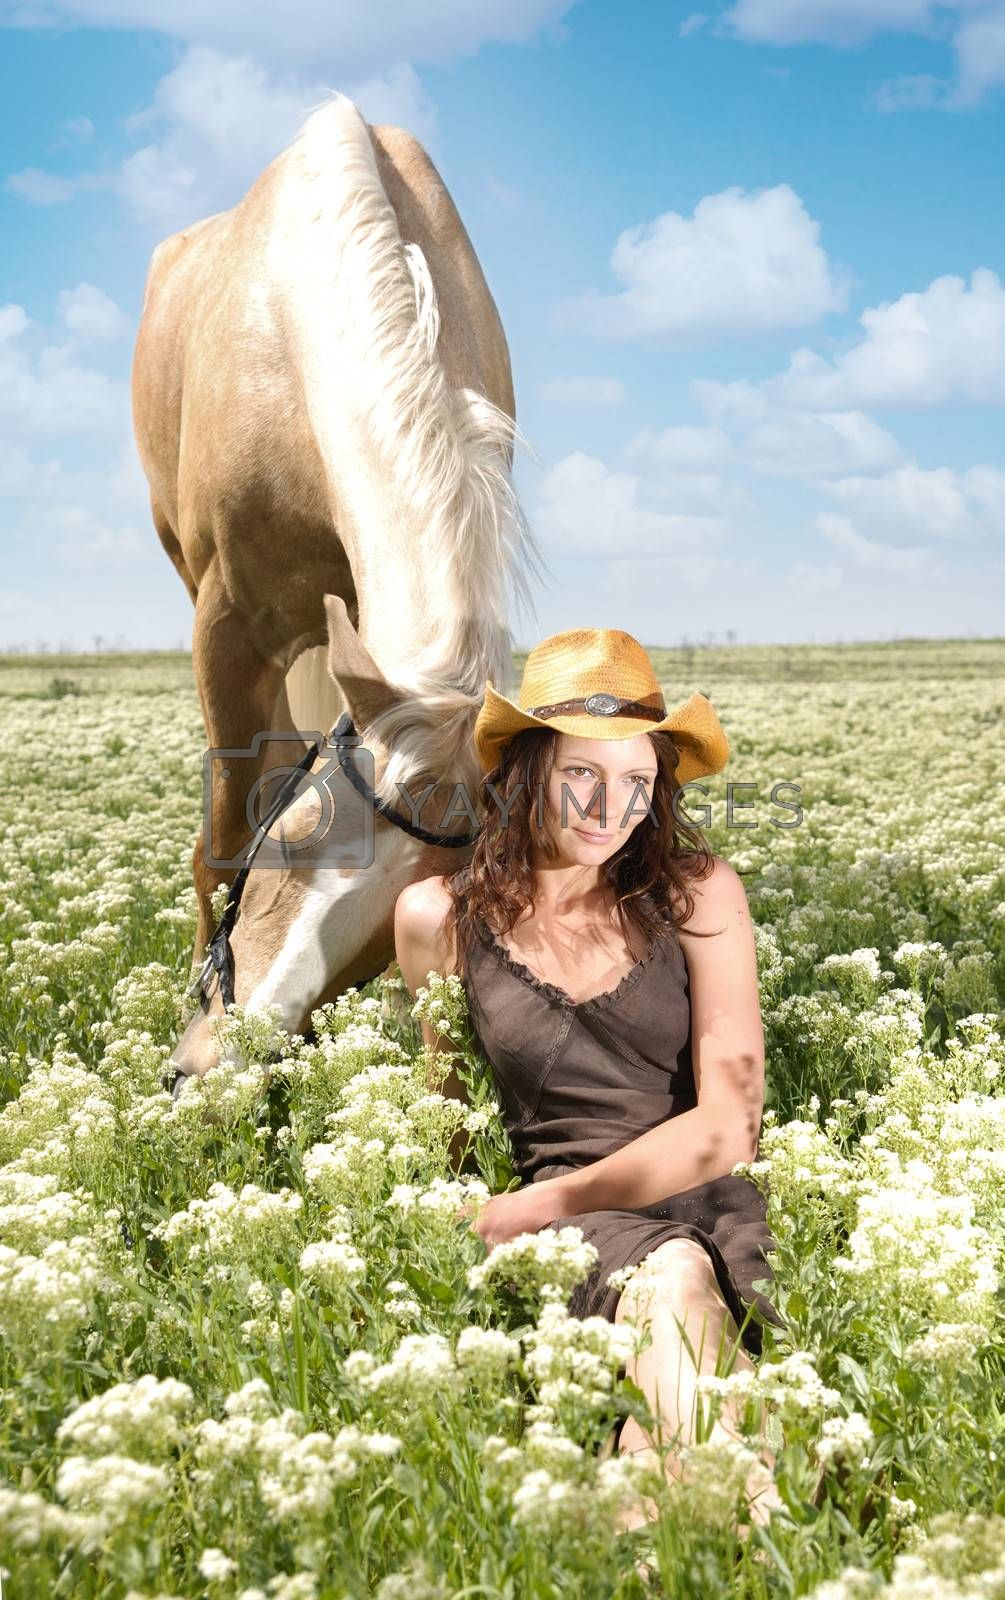 Tender relationship between the horse and lady sitting in the grass